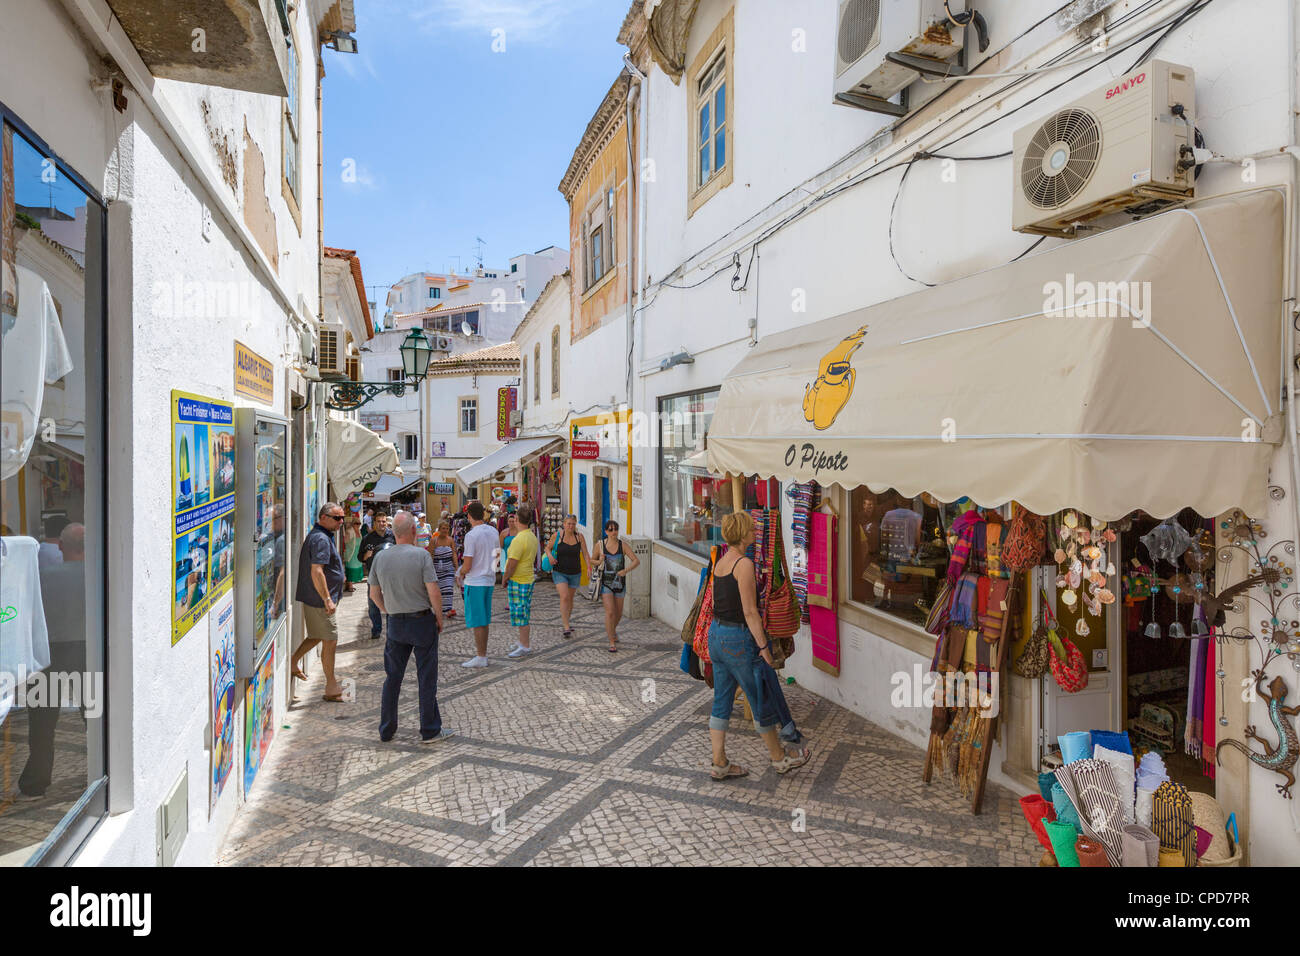 Shops in the old town centre, Albufeira, Algarve, Portugal - Stock Image